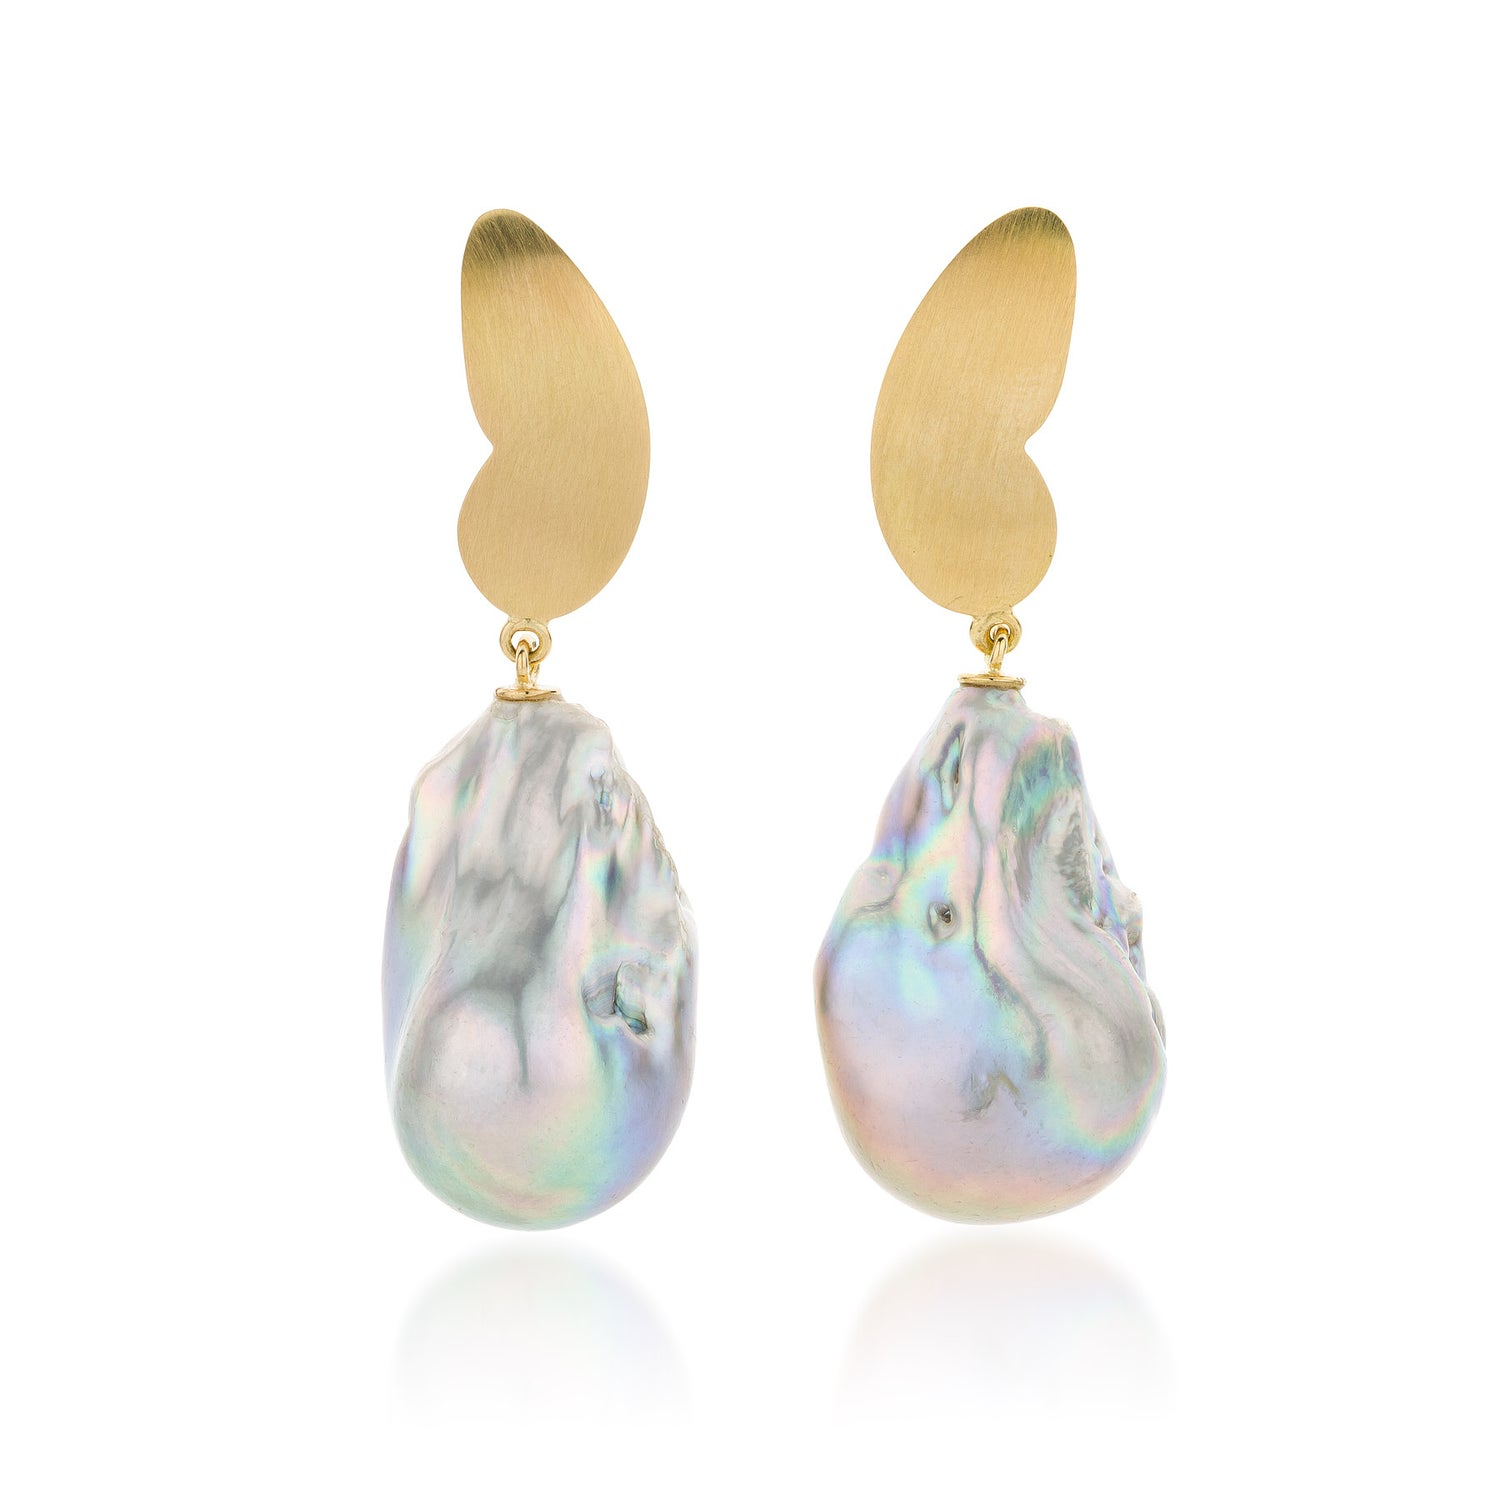 Image of  'Icons'  oorjuwelen in goud en barokparels / 'Icons' butterfly earrings in gold and baroque pearls